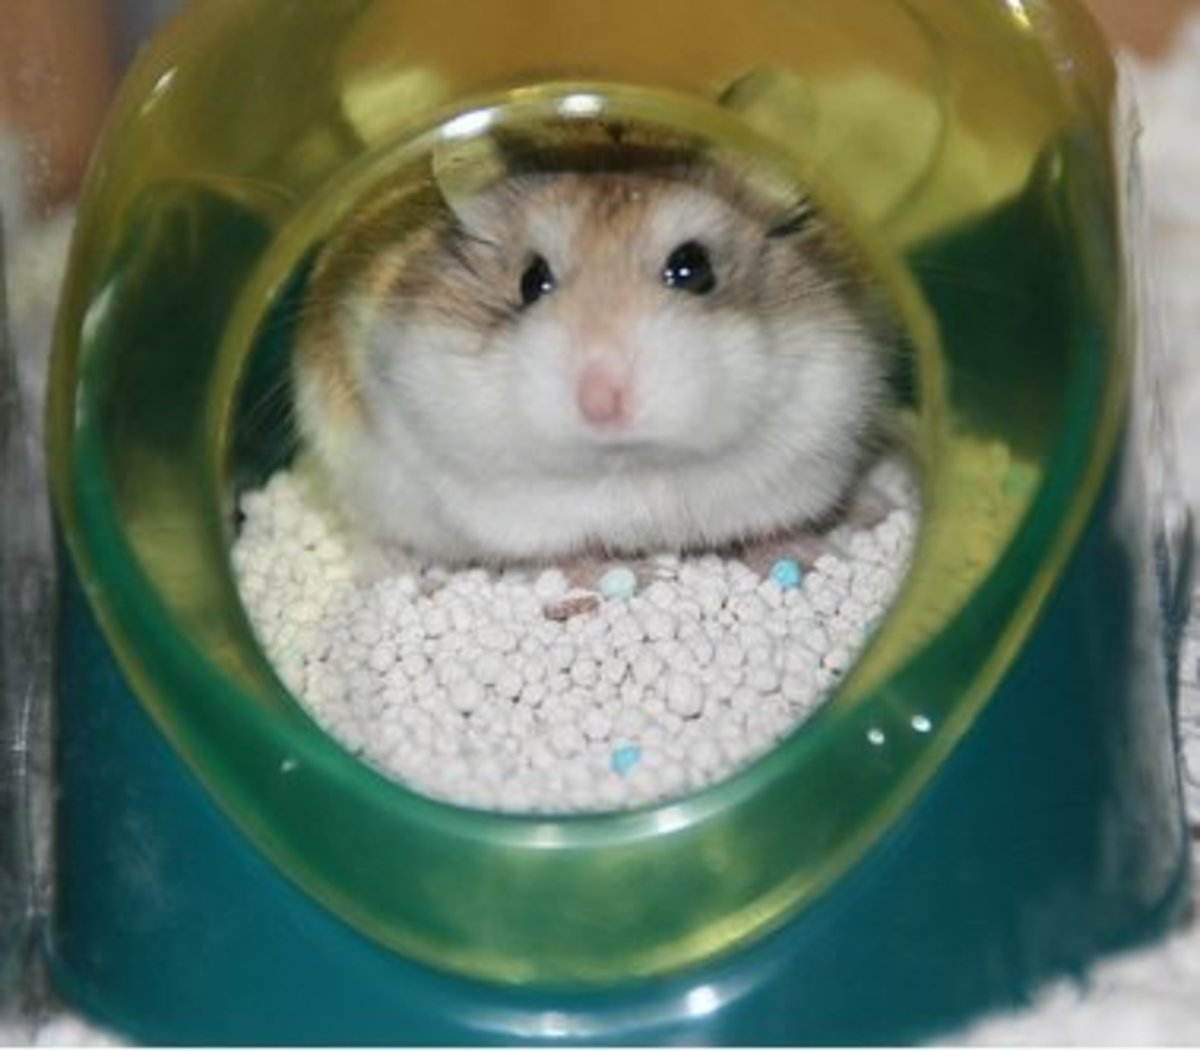 Here's an example of a hamster potty (and a potty-trained hamster!).